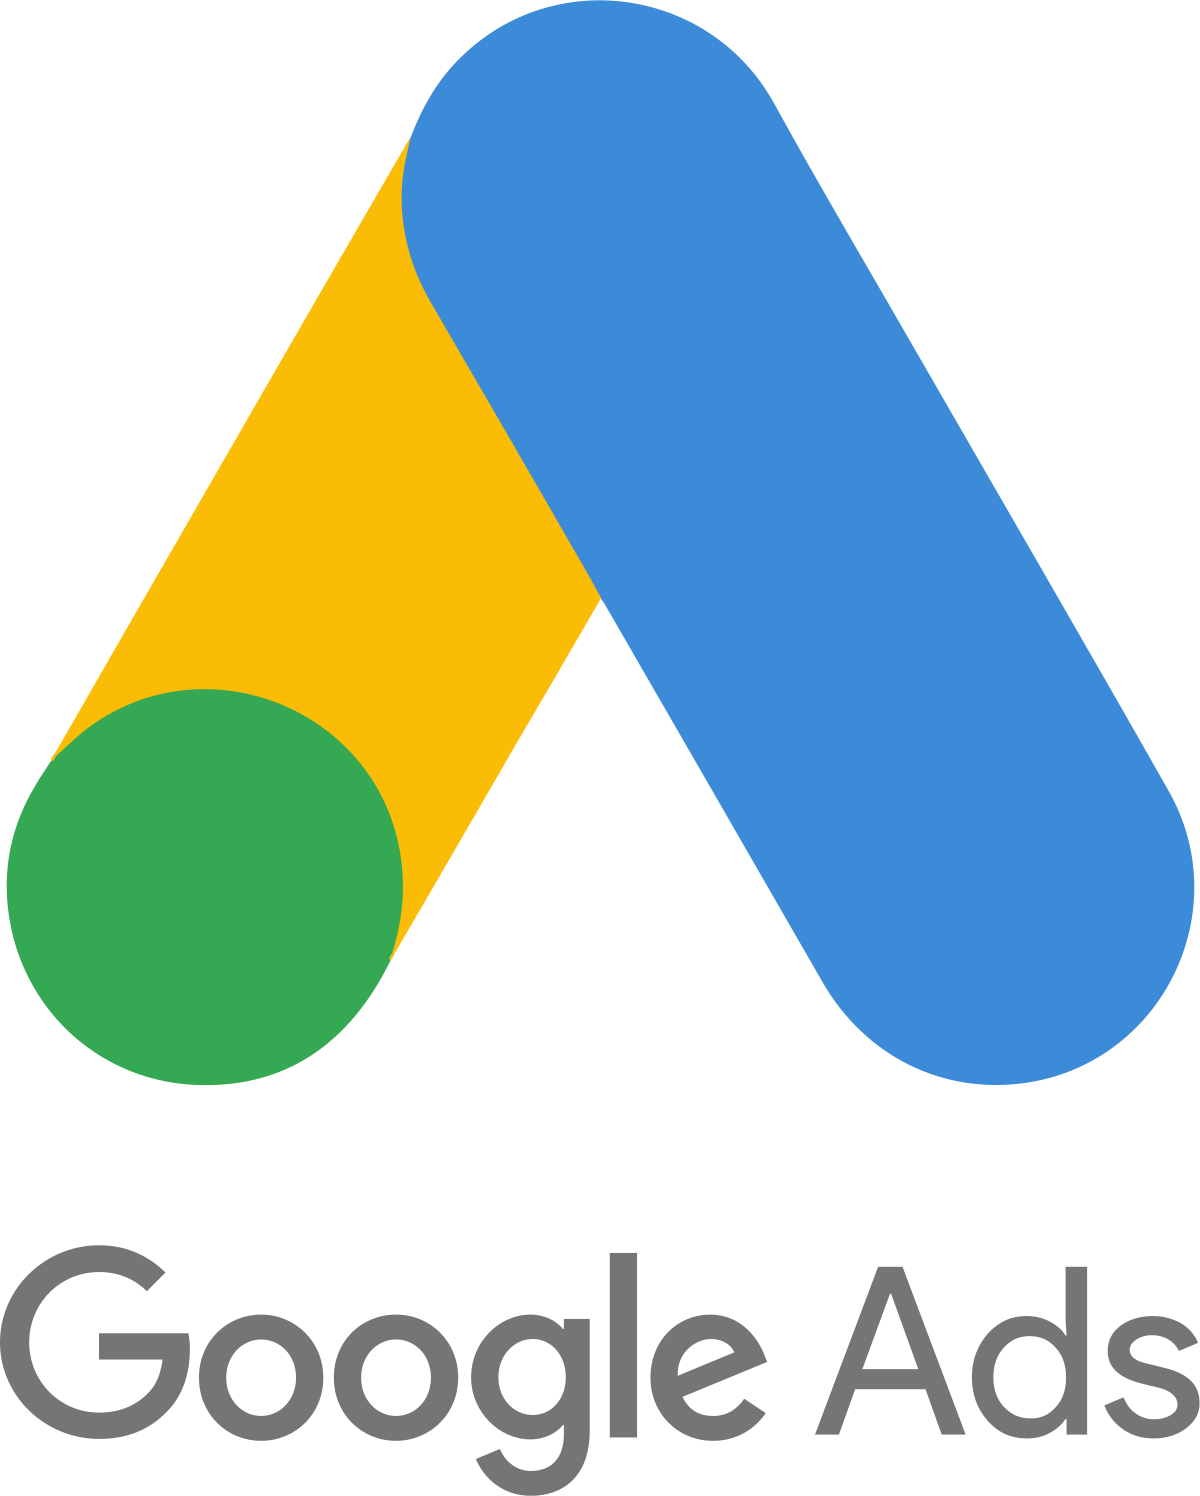 banner download Adwords wikipedia . Using svg benefits